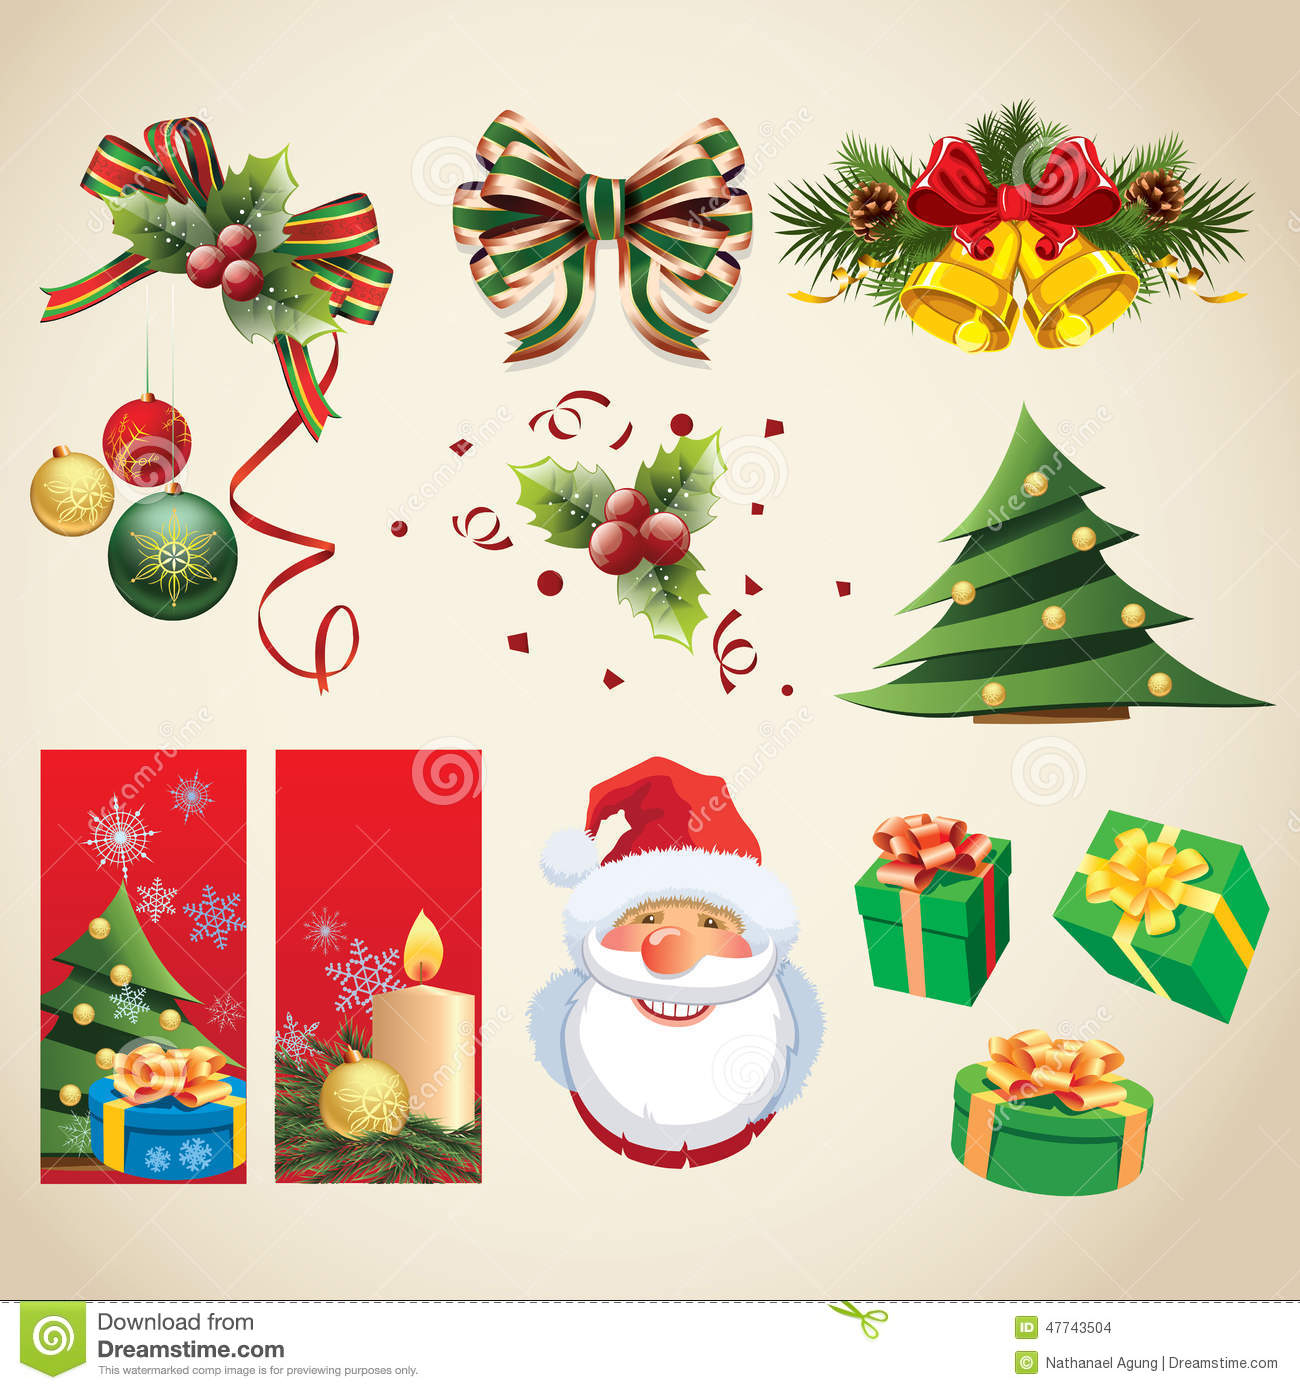 Christmas-themed Items Collection Stock Vector - Image: 47743504